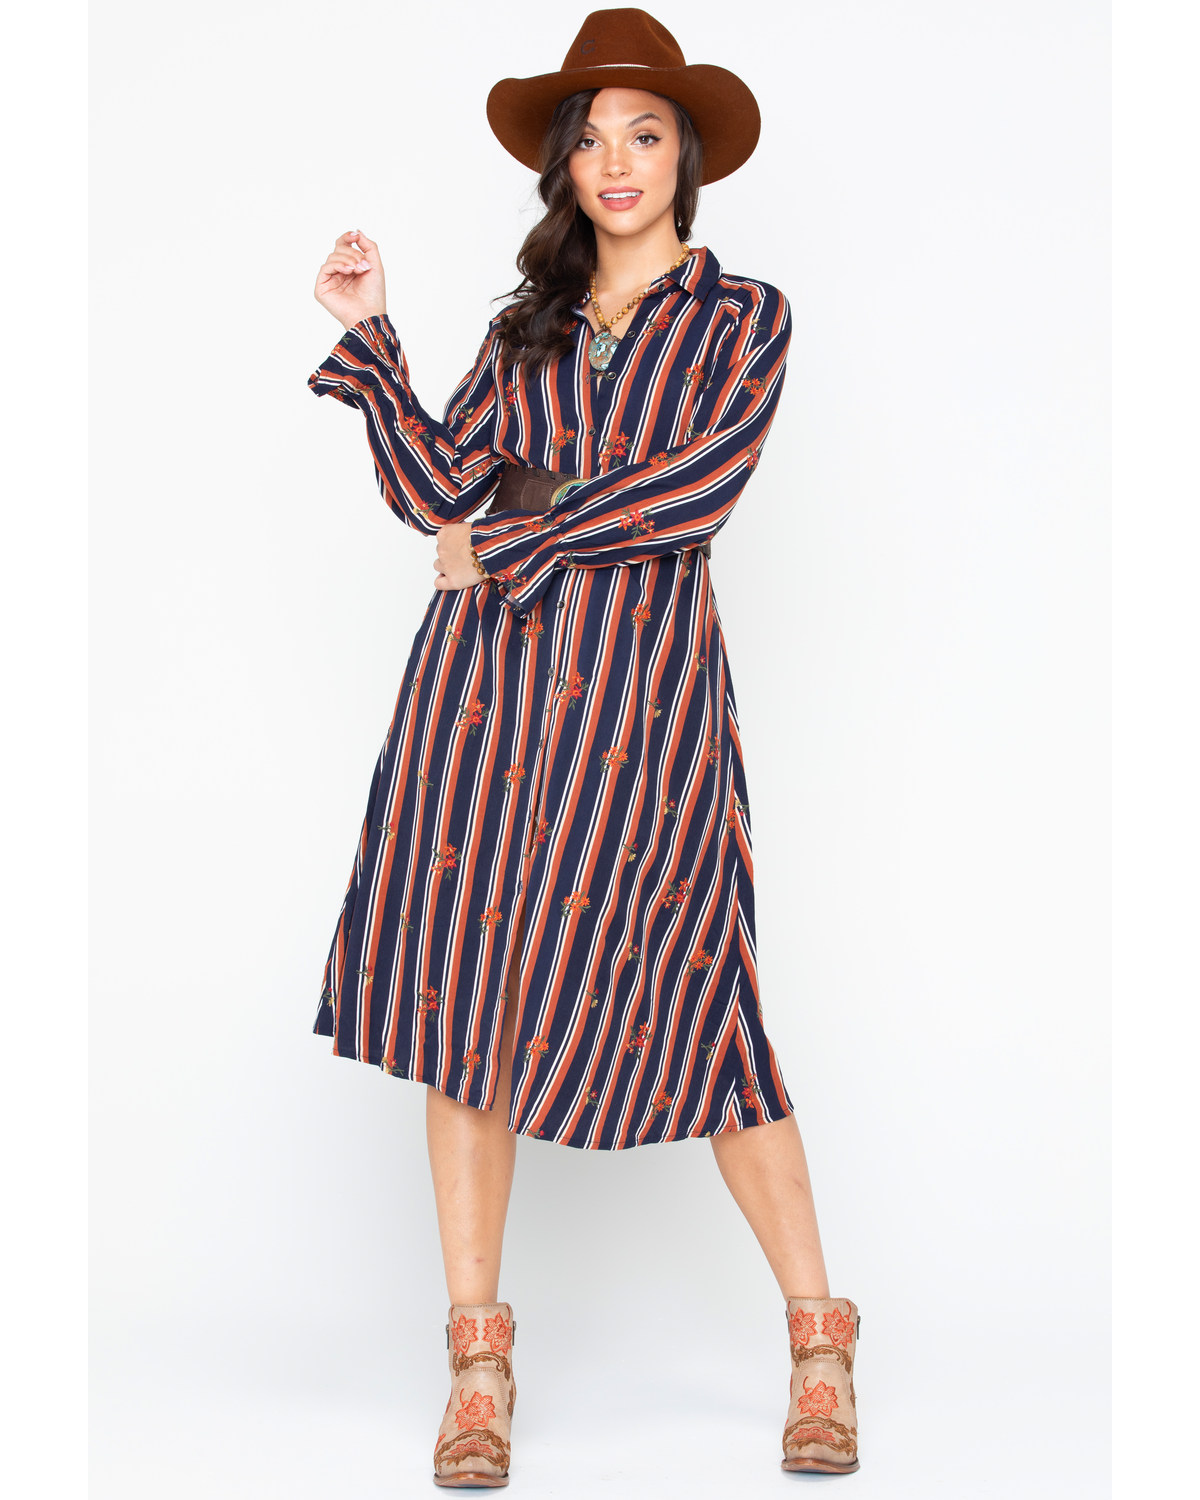 8aec50ebf4de2 Miss Me Women s Striped Button Down Shirt Dress